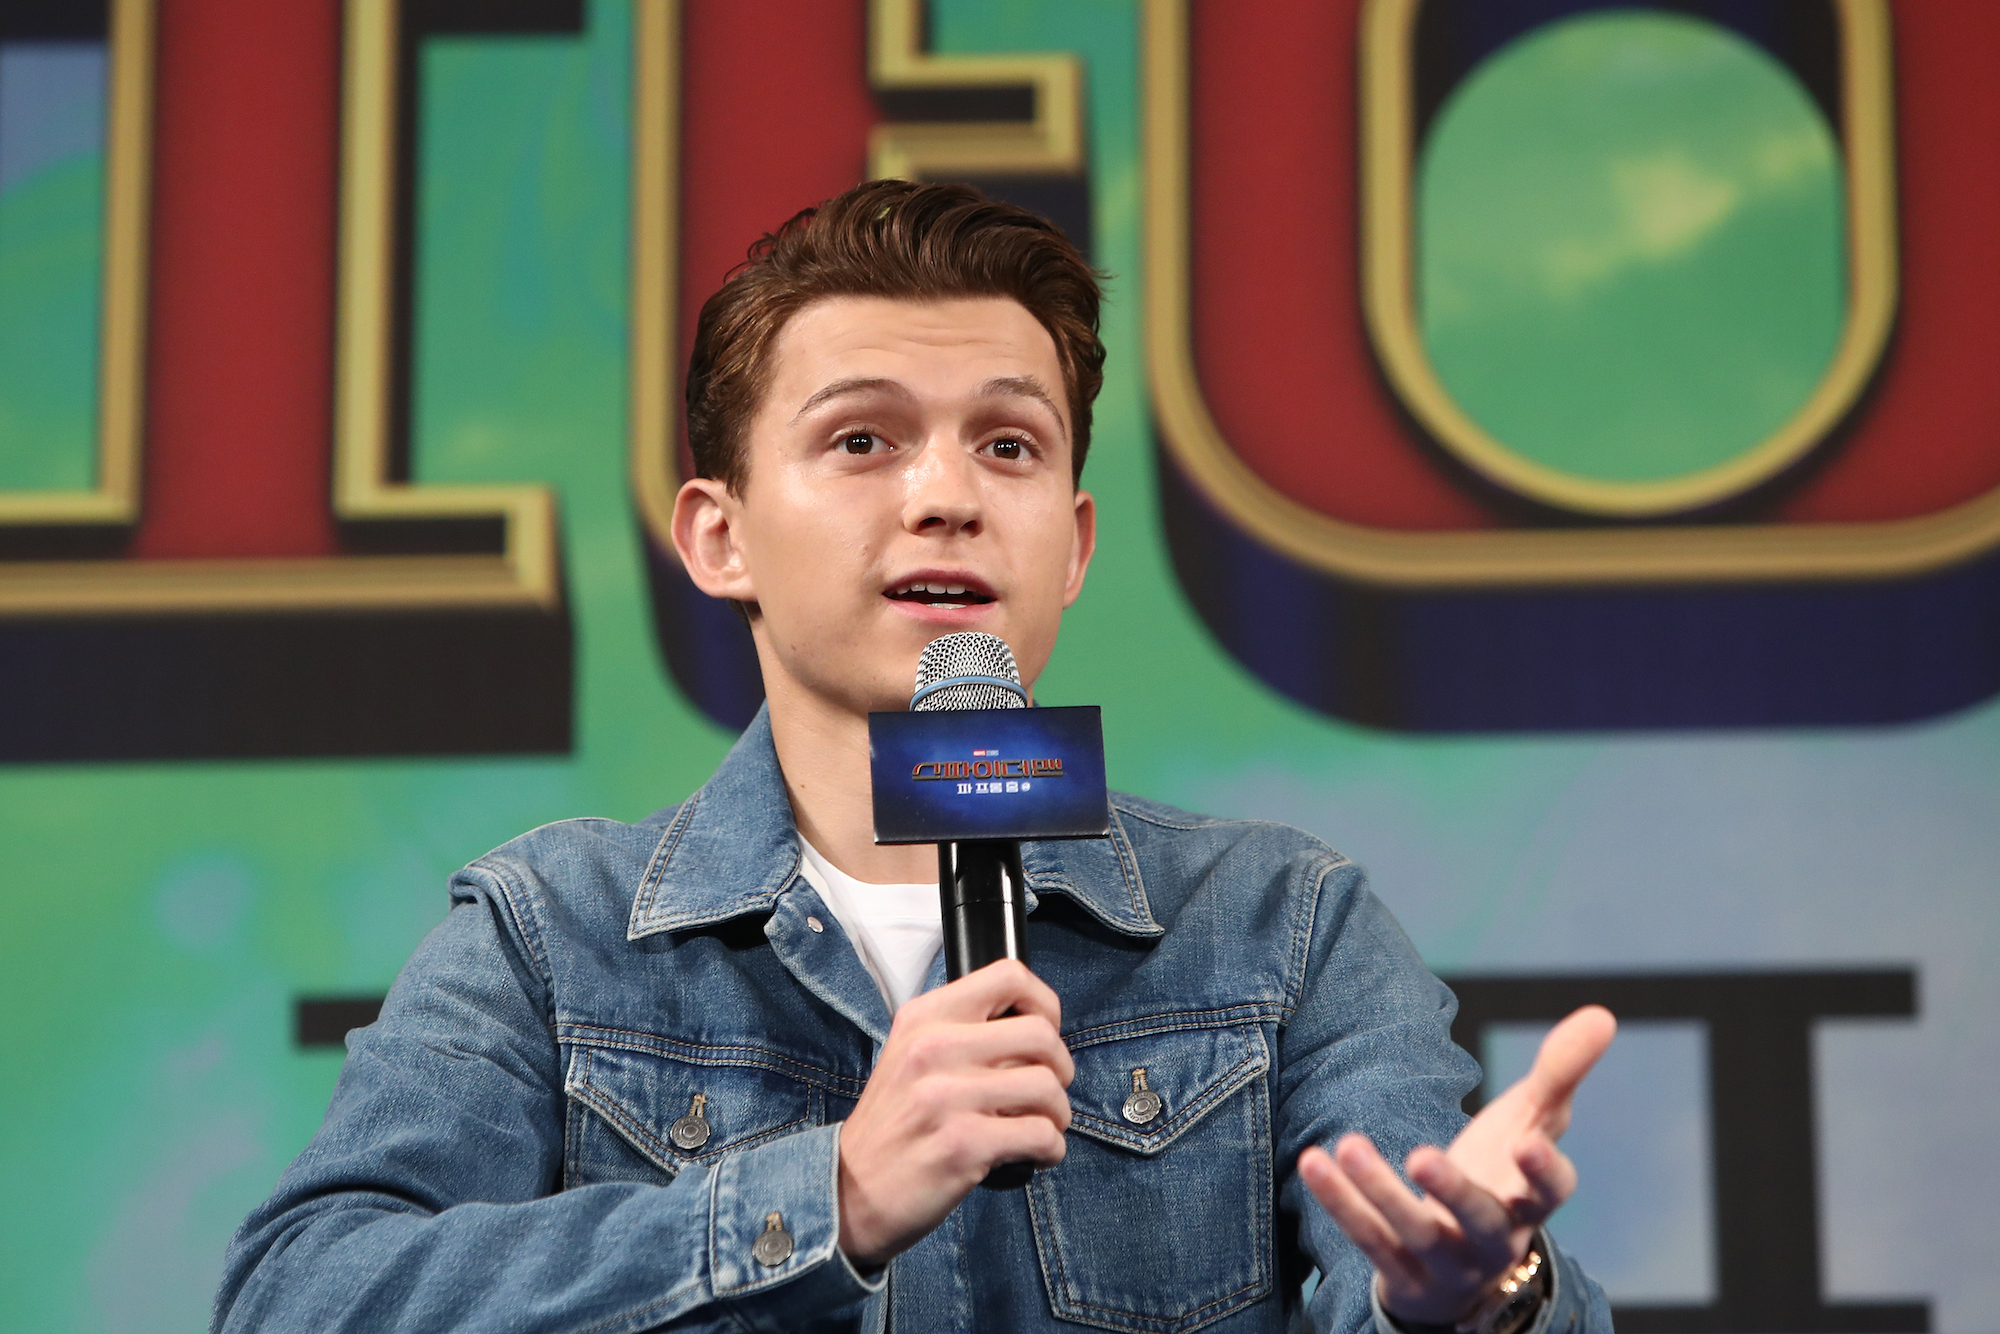 Tom Holland at the press conference for 'Spider-Man: Far From Home' on July 01, 2019